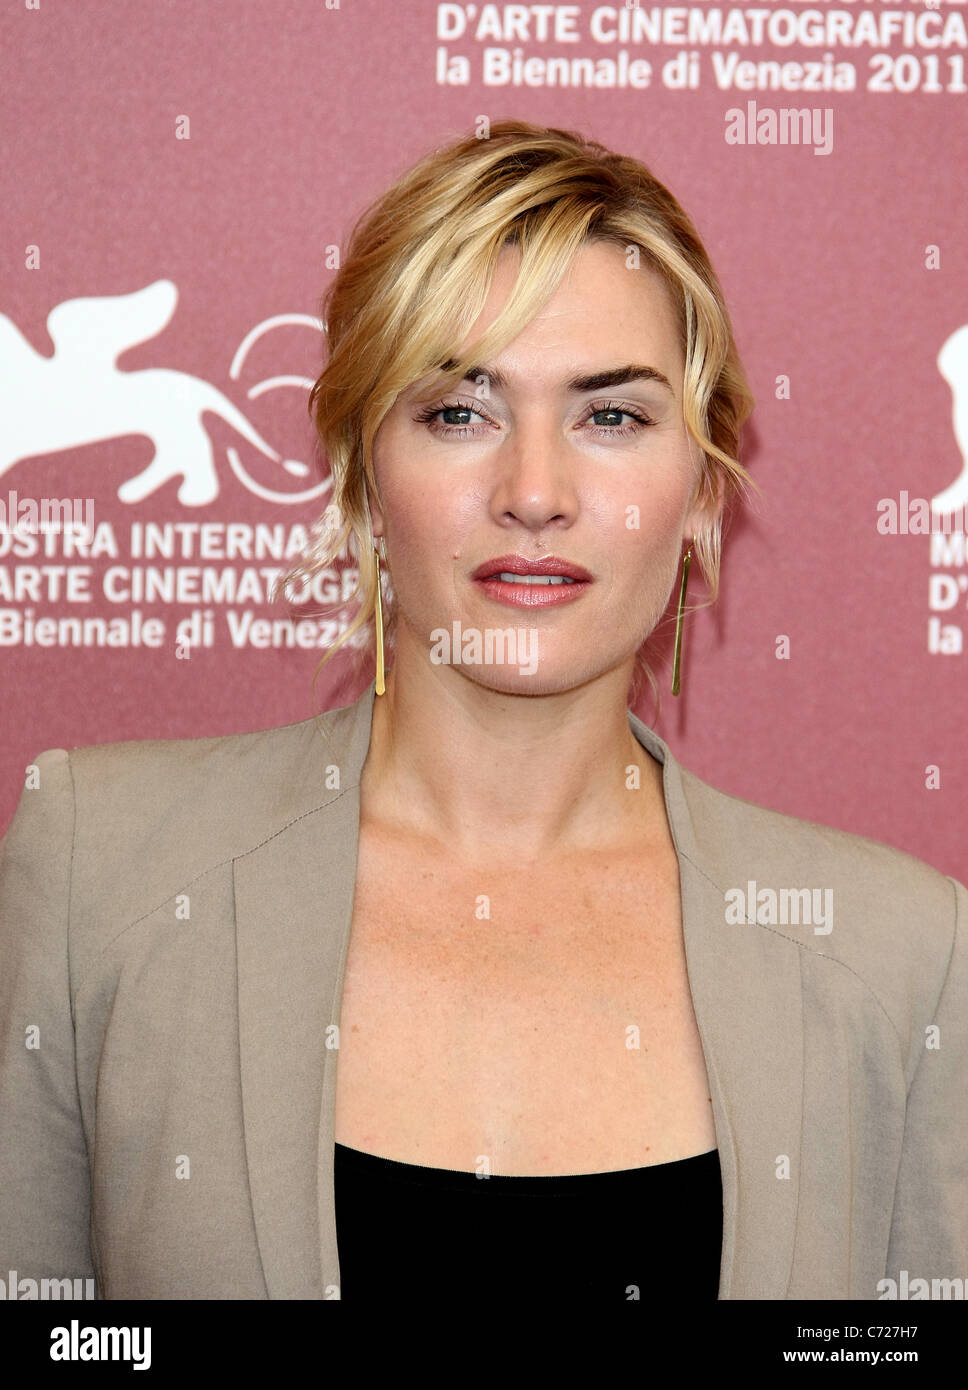 KATE WINSLET CARNAGE PHOTOCALL. 68TH VENICE FILM FESTIVAL LIDO VENICE  ITALY 01 September 2011 - Stock Image